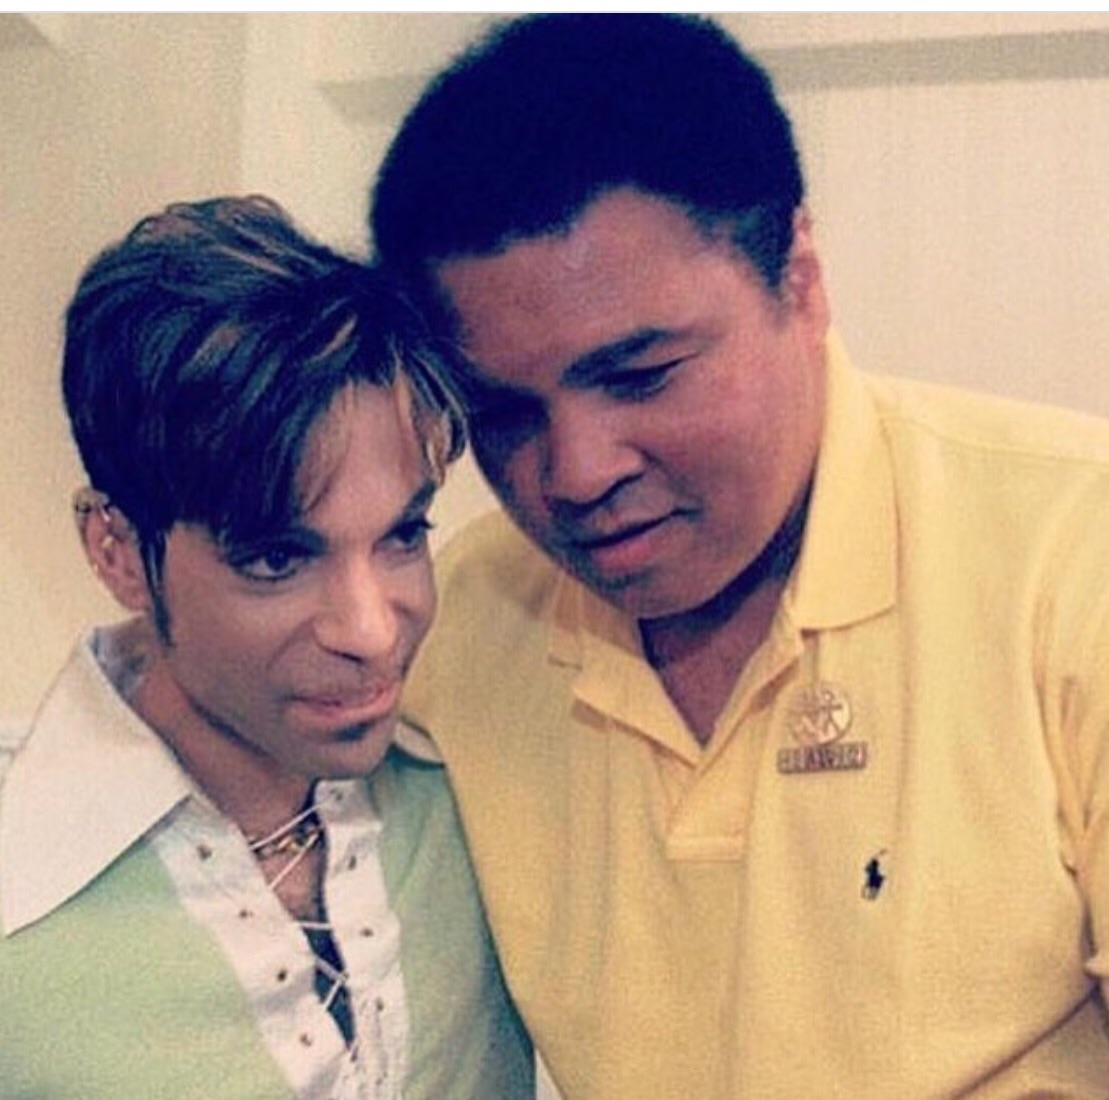 Fans shared this photo all over the Internet of The Lengends R.I.P  Prince and Muhaamad Ali